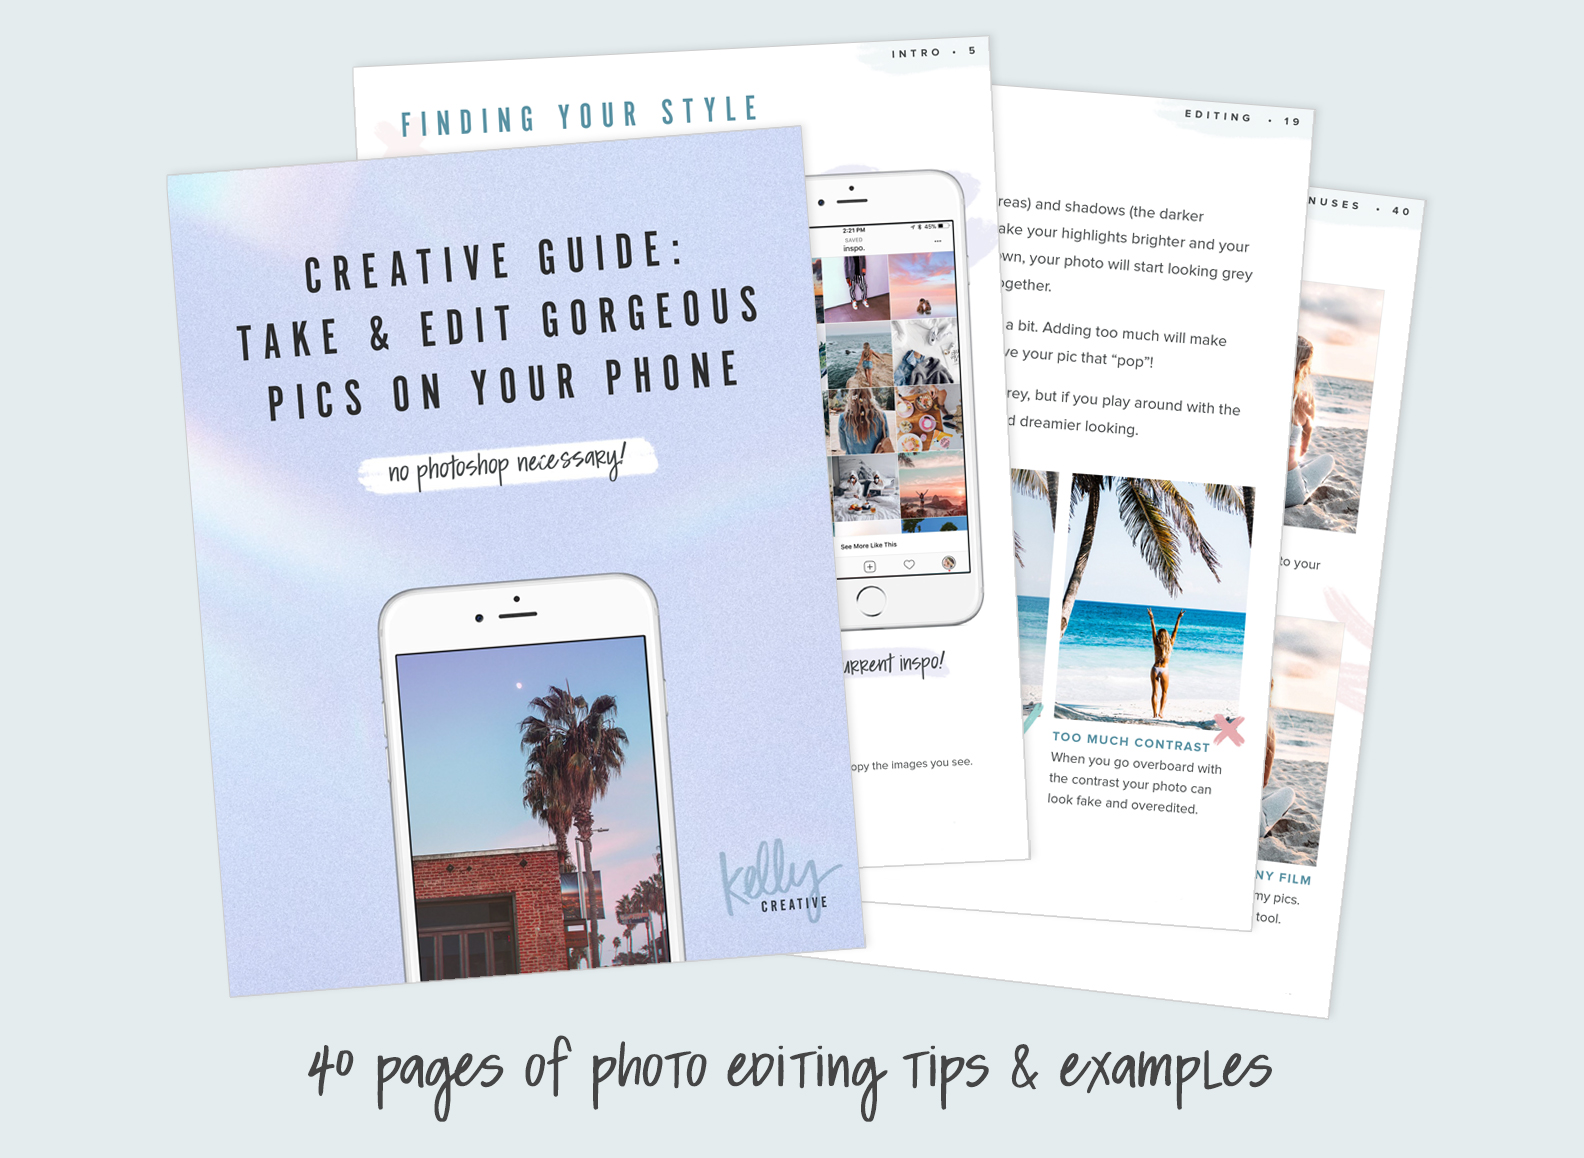 iphone-photo-editing-tips-pdf.jpg